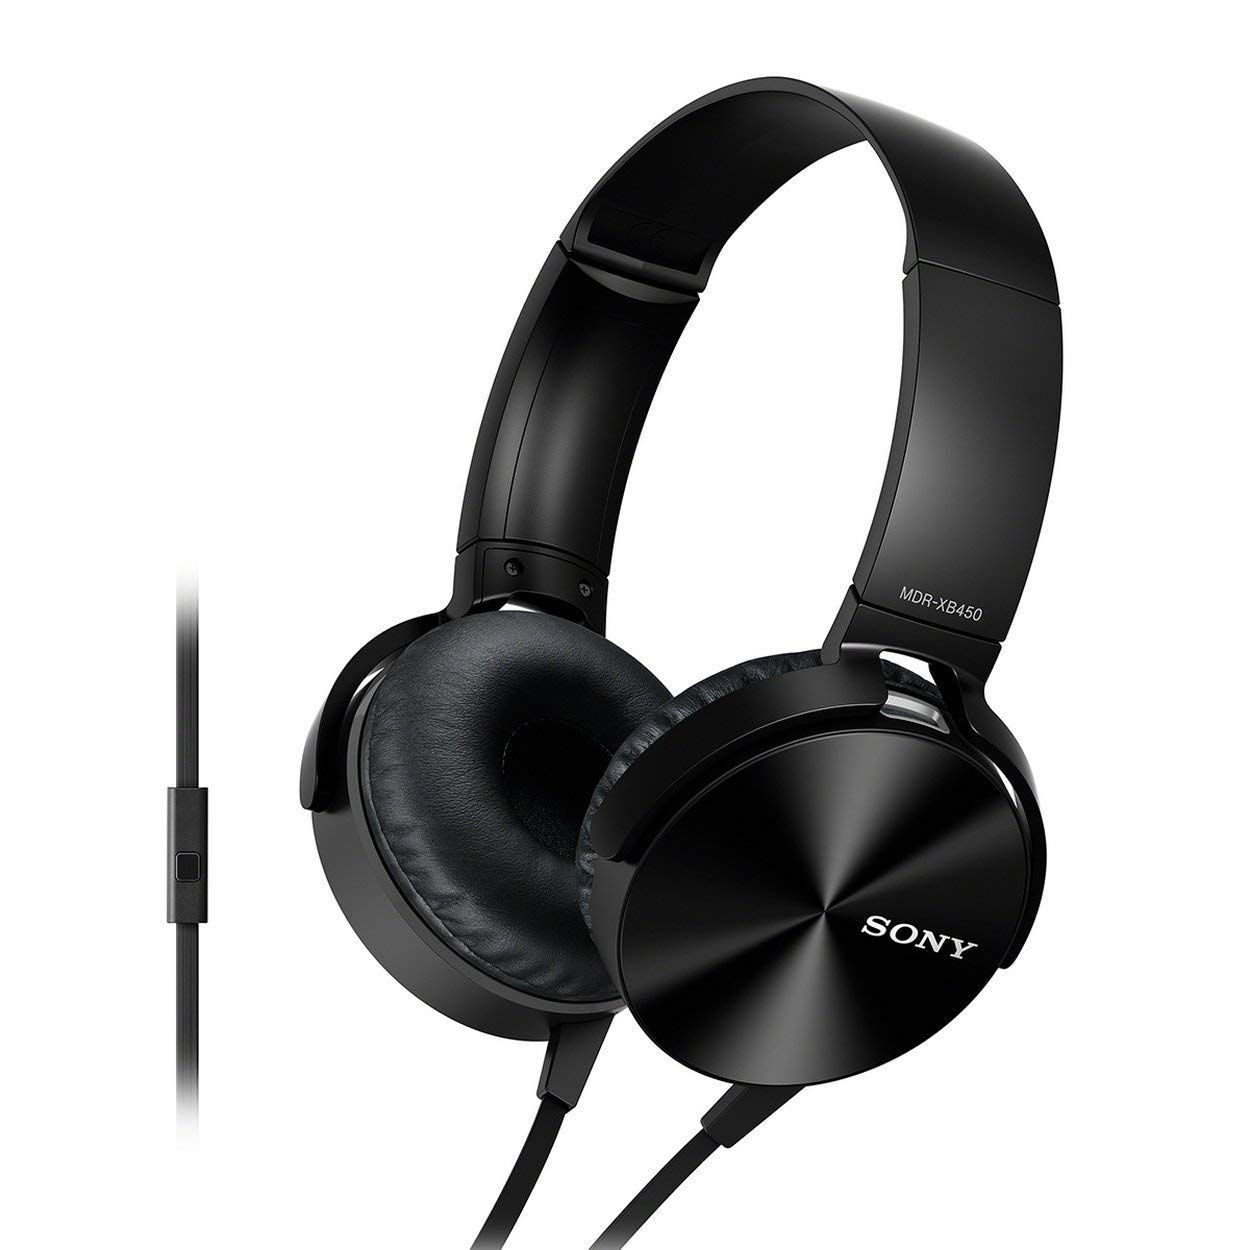 Sony Extra Bass Mdr Xb450ap On Ear Headphones With Mic Amazon In Computers Accessories Dealofthetoday Bass Headphones Sony Headphones In Ear Headphones